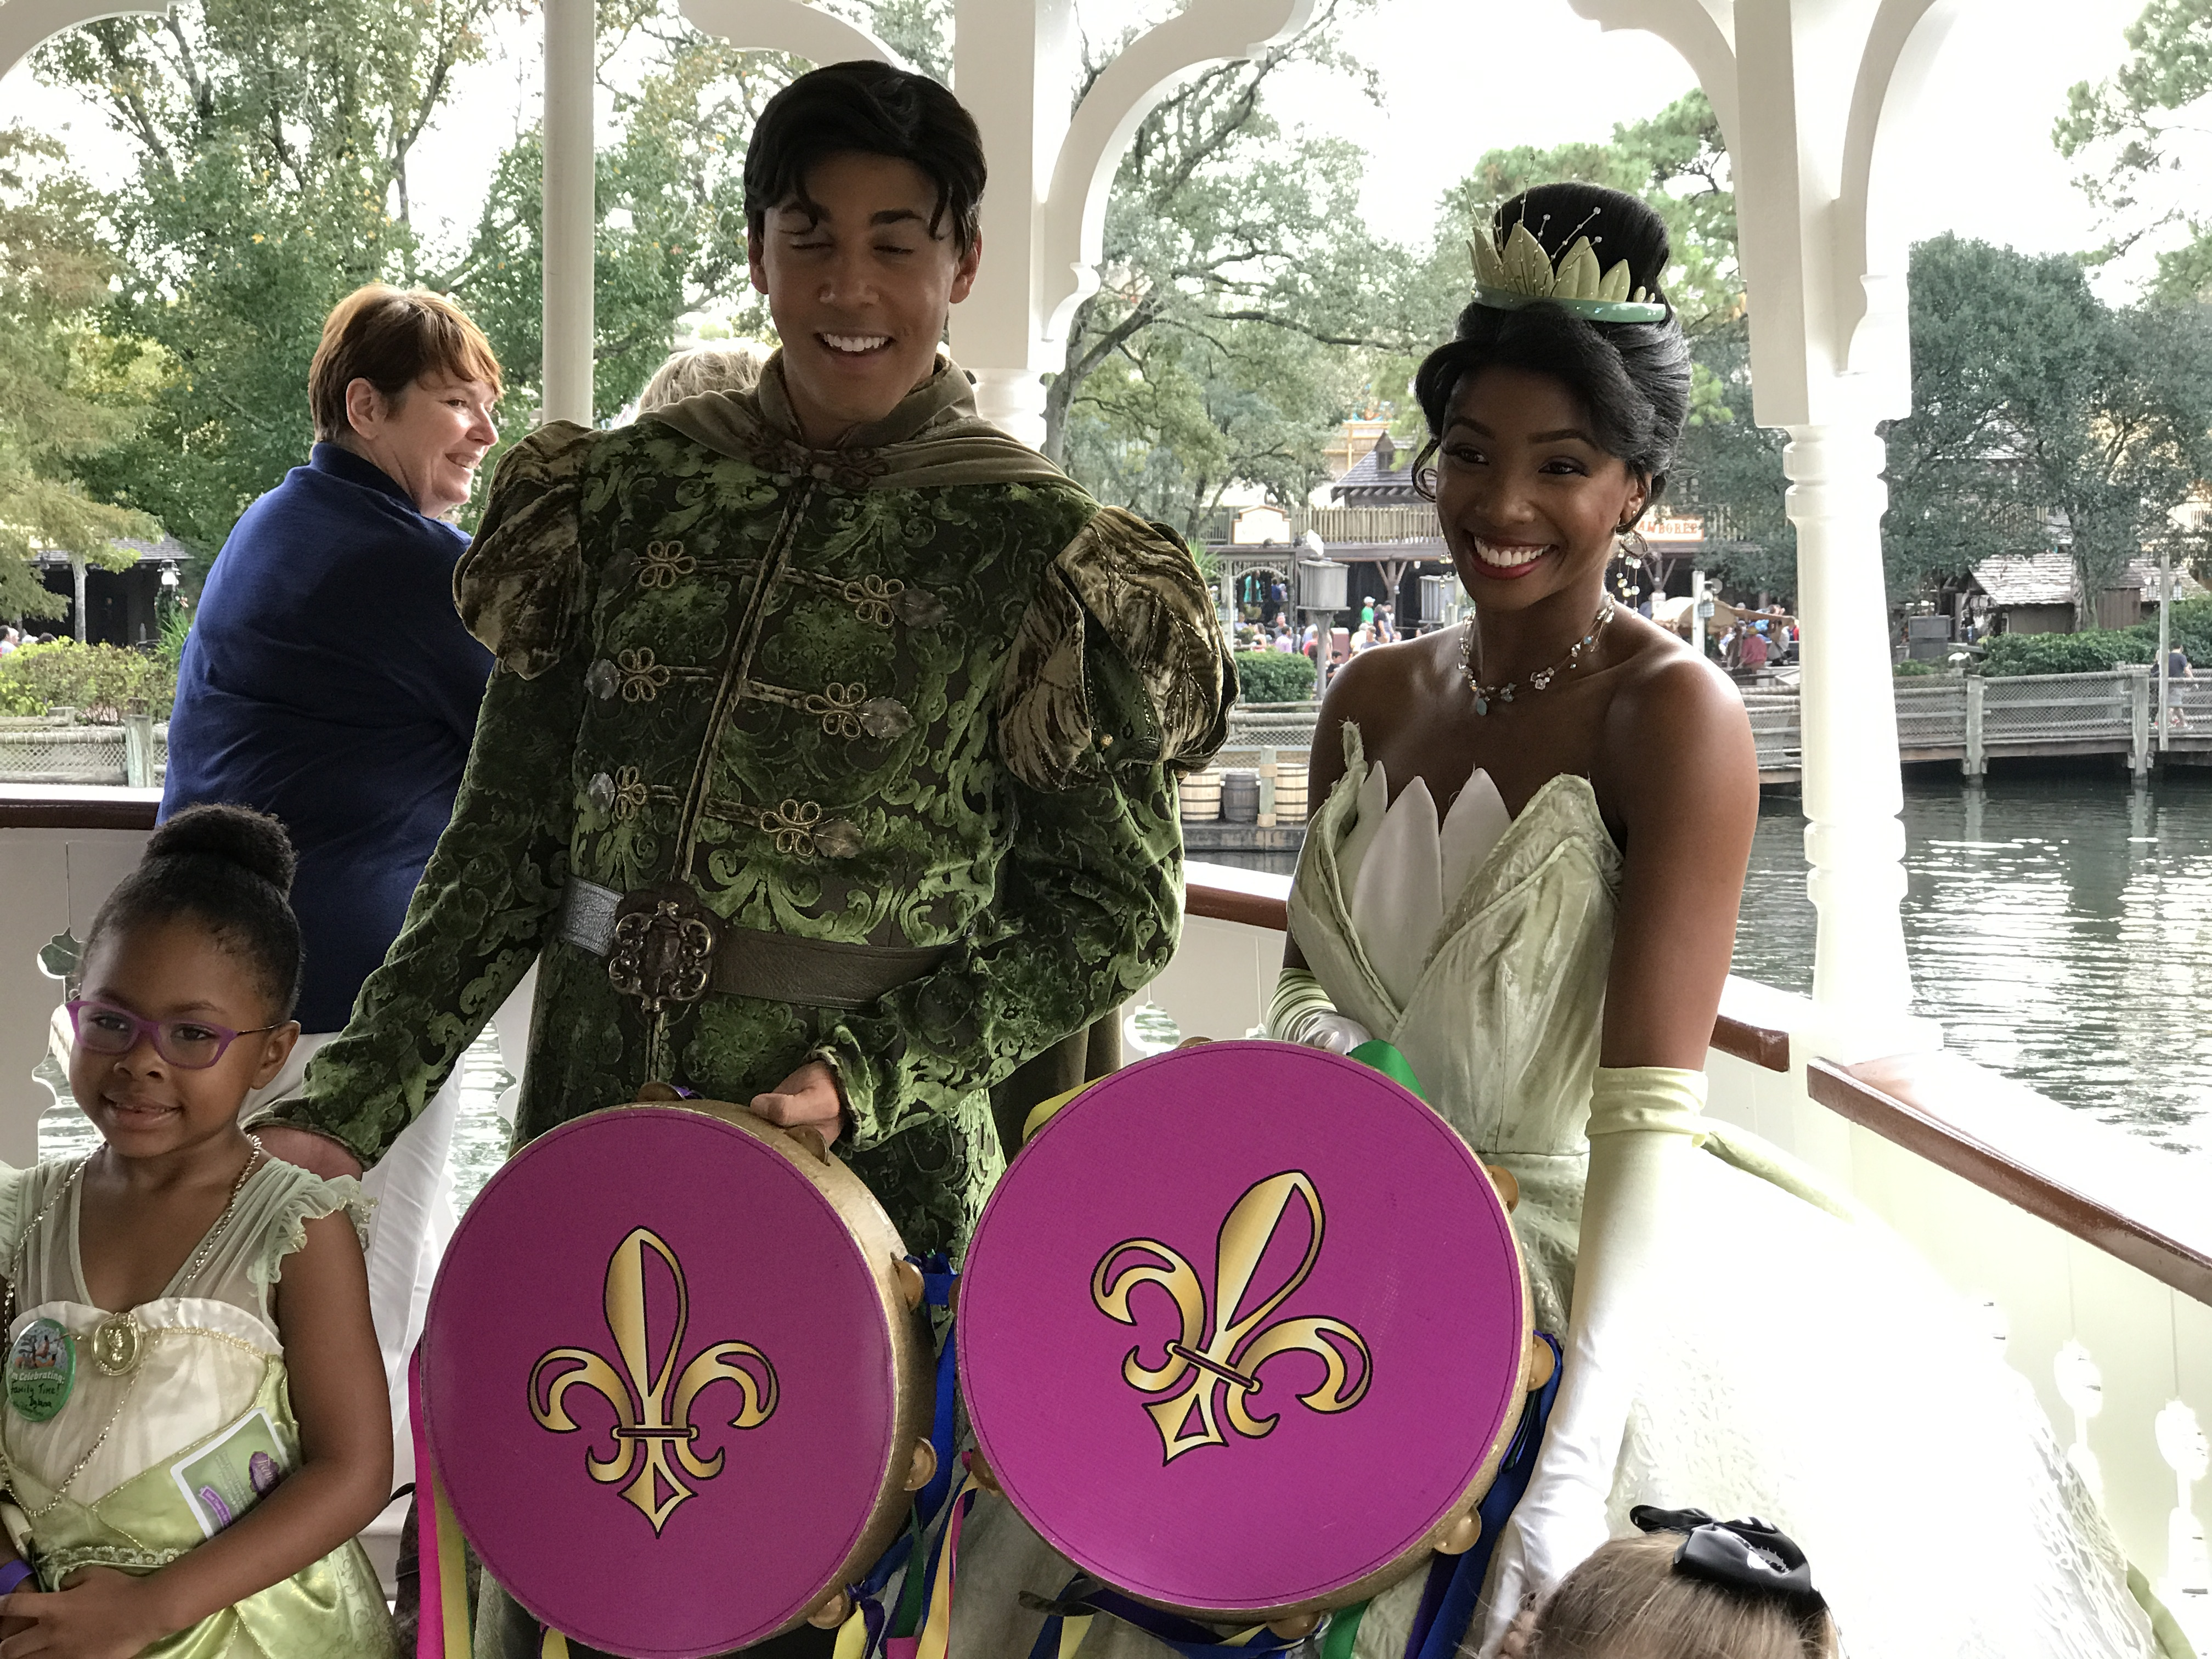 Event Review: Tiana's Riverboat Party & Ice Cream Social